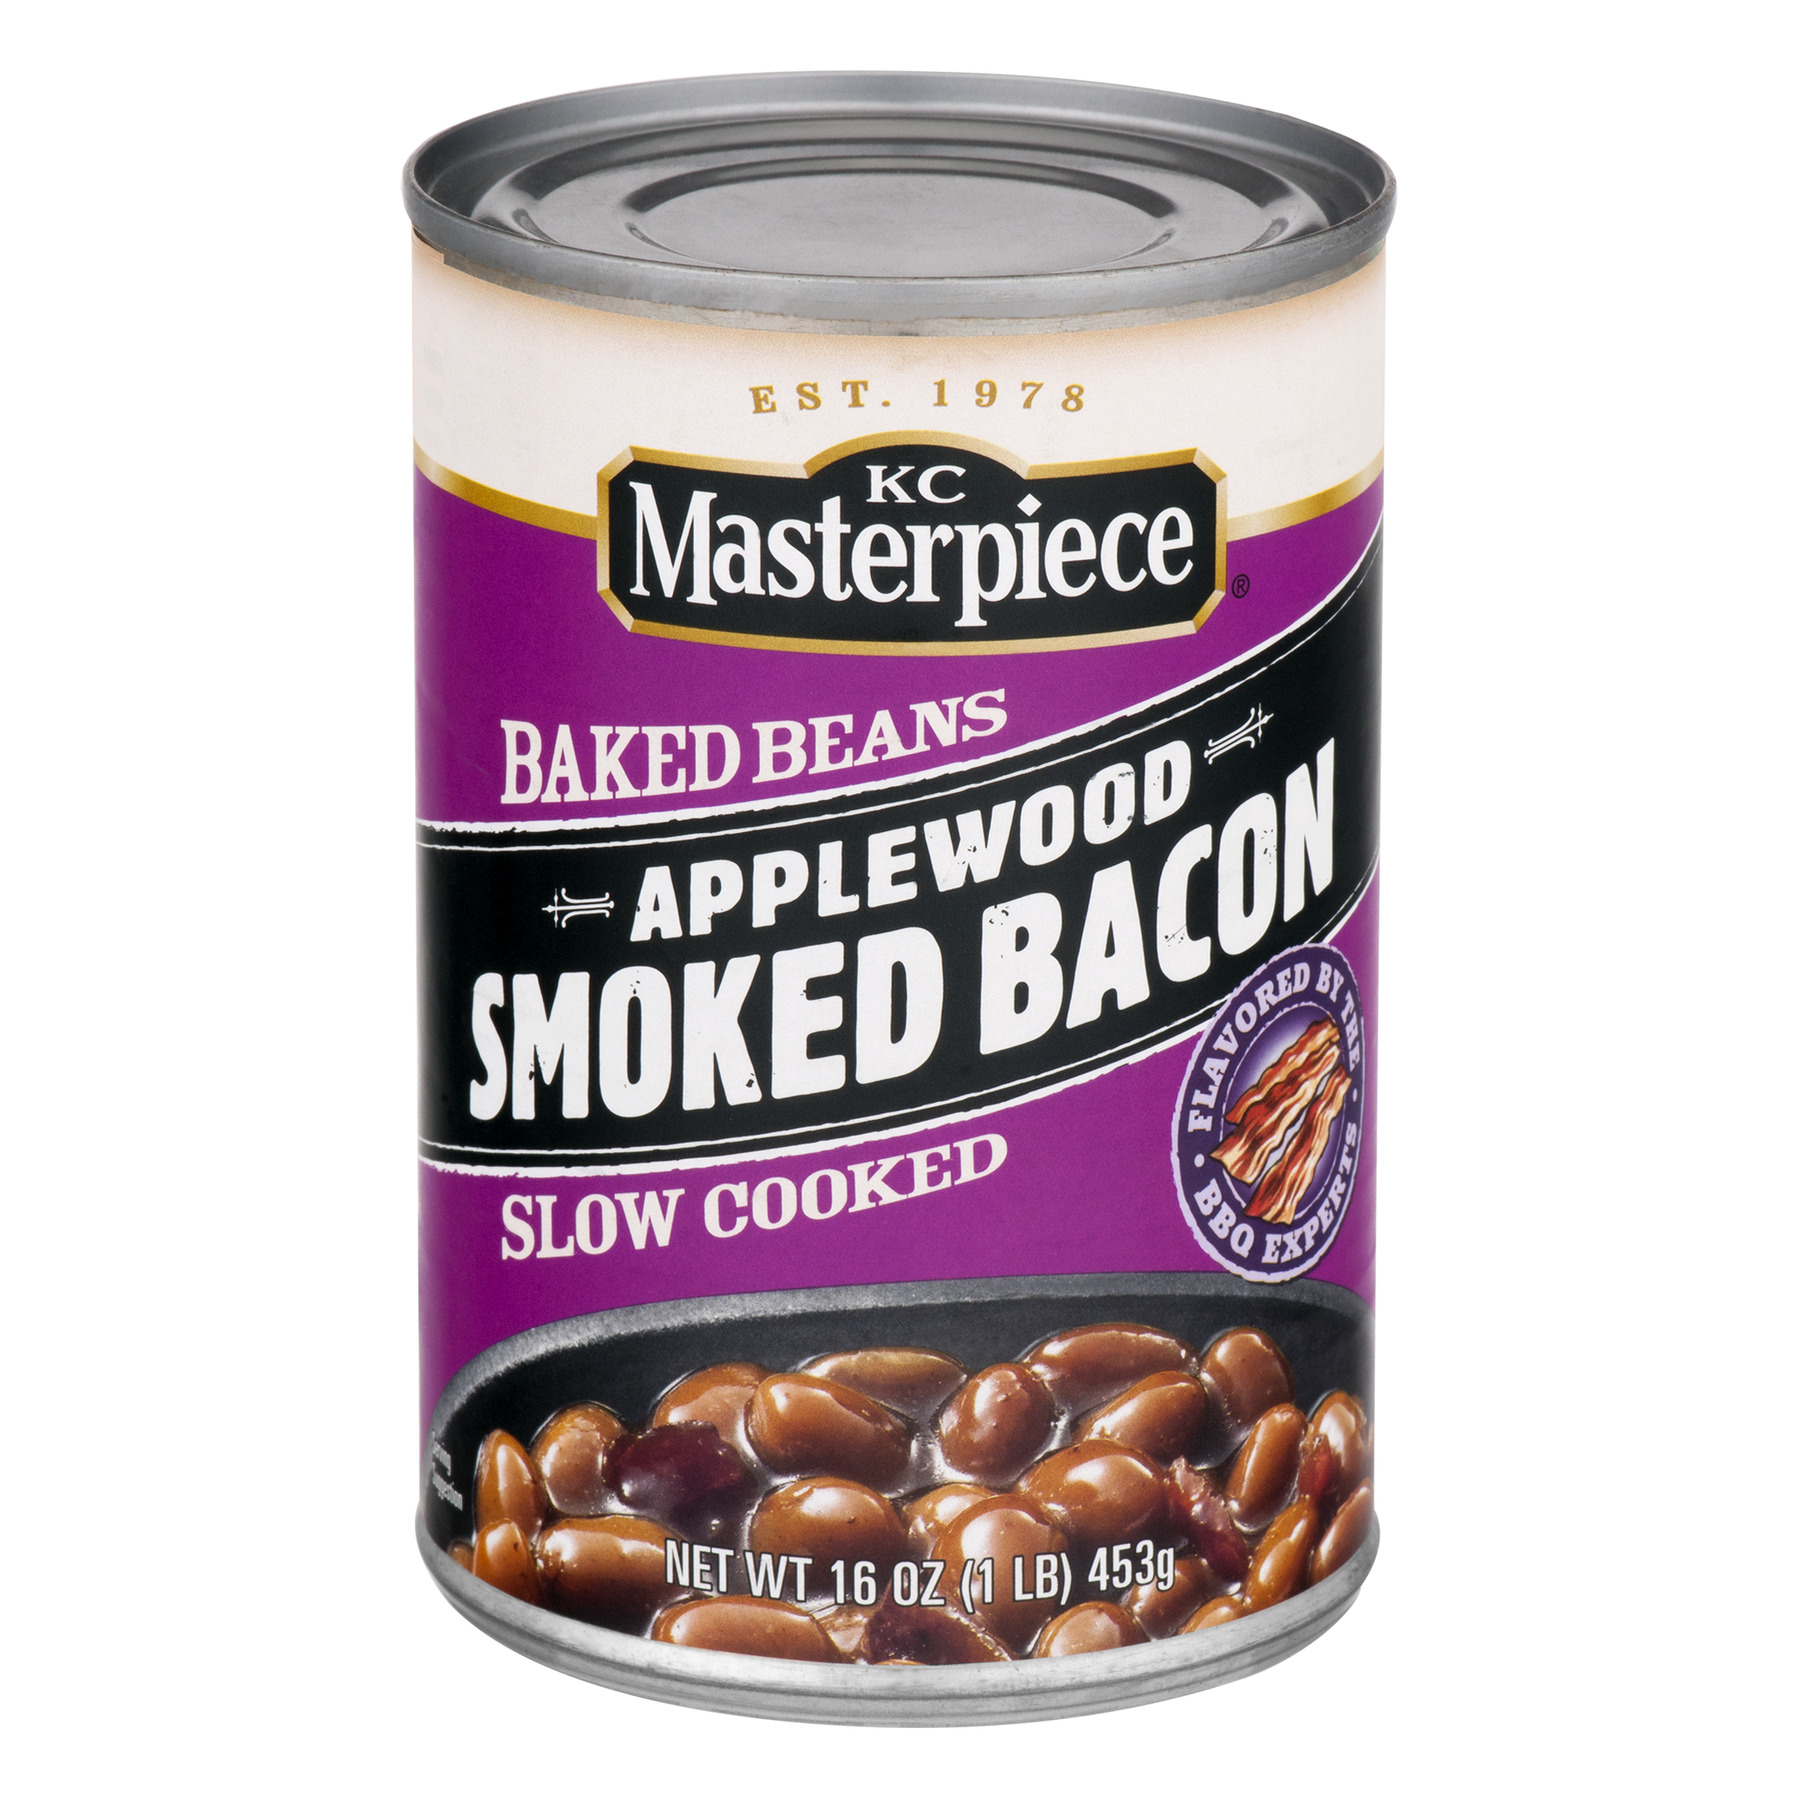 KC Masterpiece Applewood Smoked Bacon Baked Beans, 16 oz